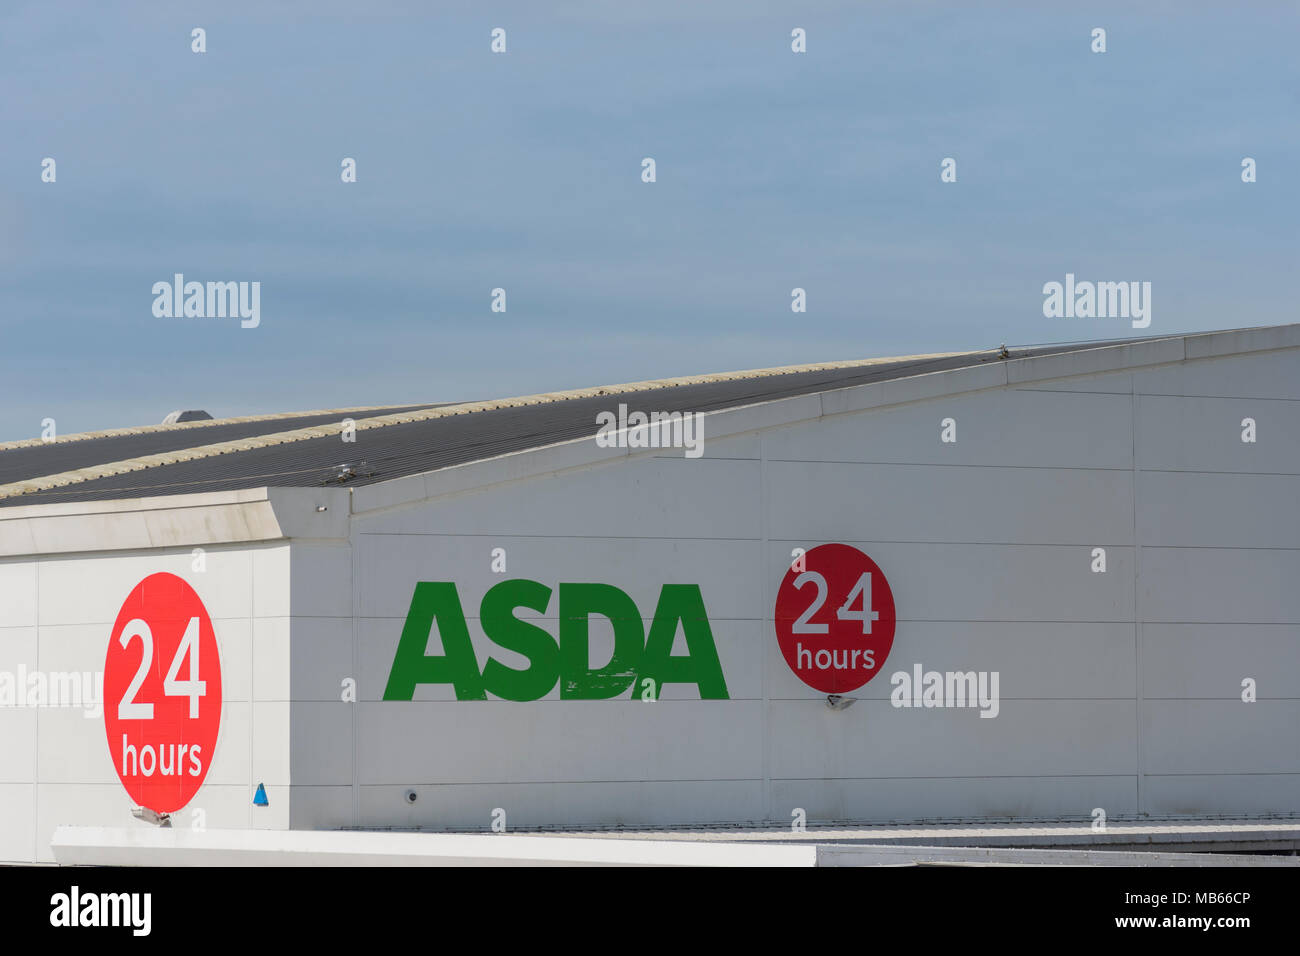 Exterior of 24-hour ASDA store in Bodmin, Cornwall. - Stock Image